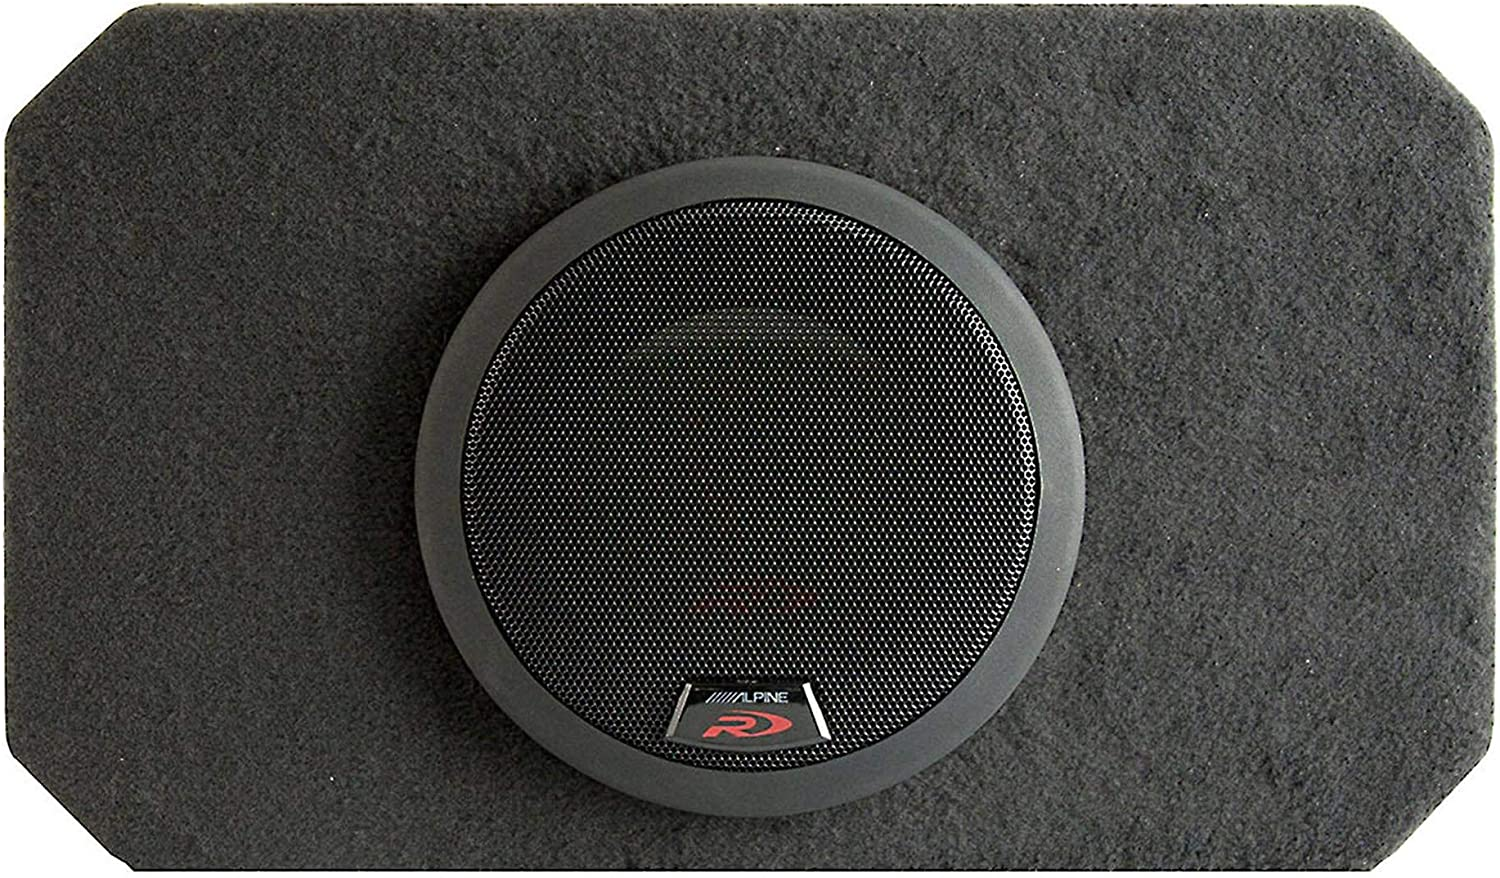 """SBR-S8-4 ALPINE 8/"""" SUB SINGLE PORTED ENCLOSURE LOADED WITH TYPE-R SUBWOOFER BOX"""